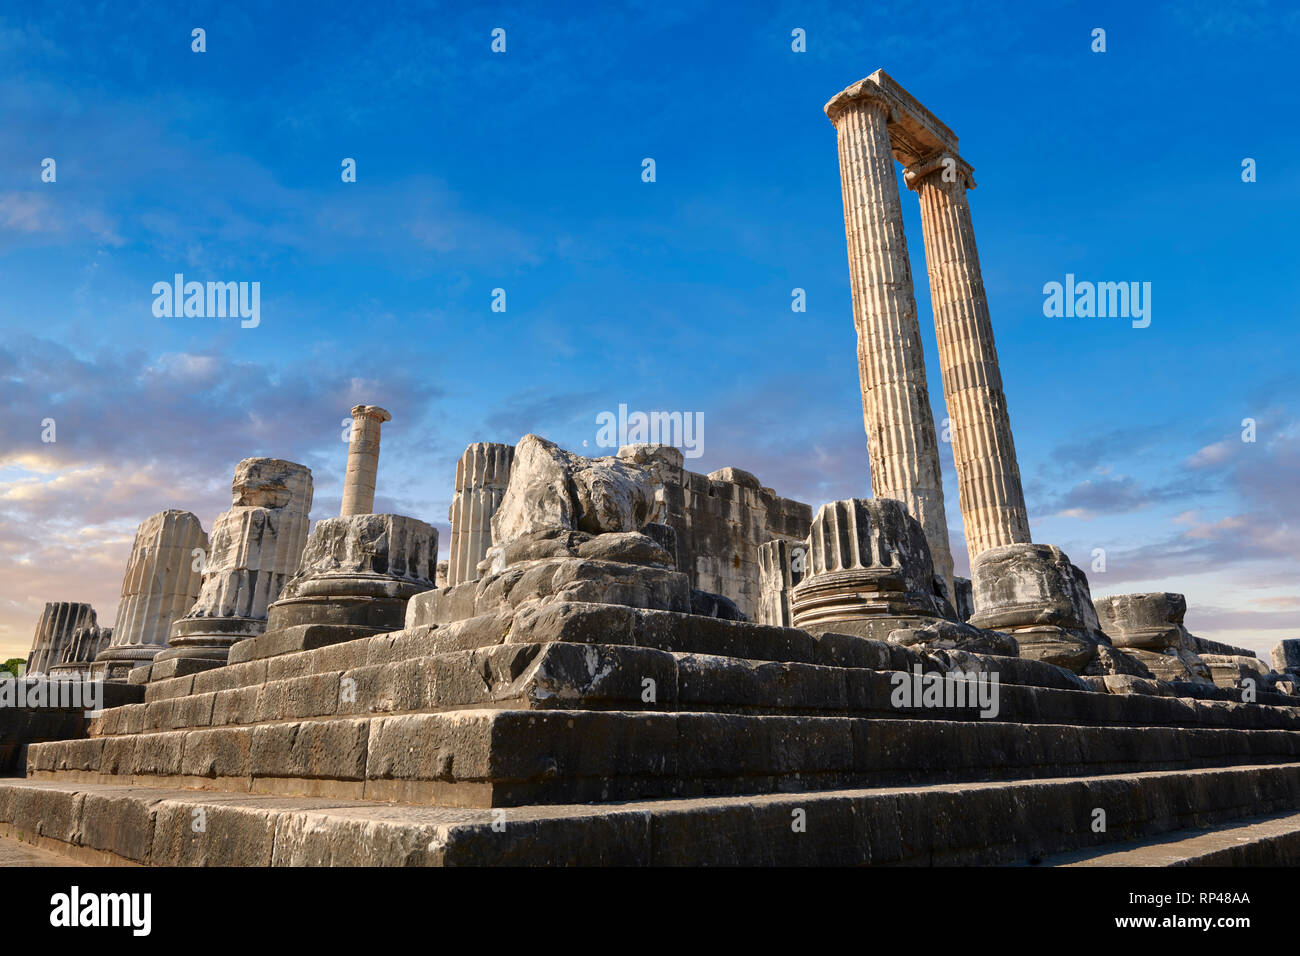 Picture of the steps & columns of the ruins of the Ancient Ionian Greek  Didyma Temple of Apollo & home to the Oracle of Apollo.  Also known as the Di - Stock Image